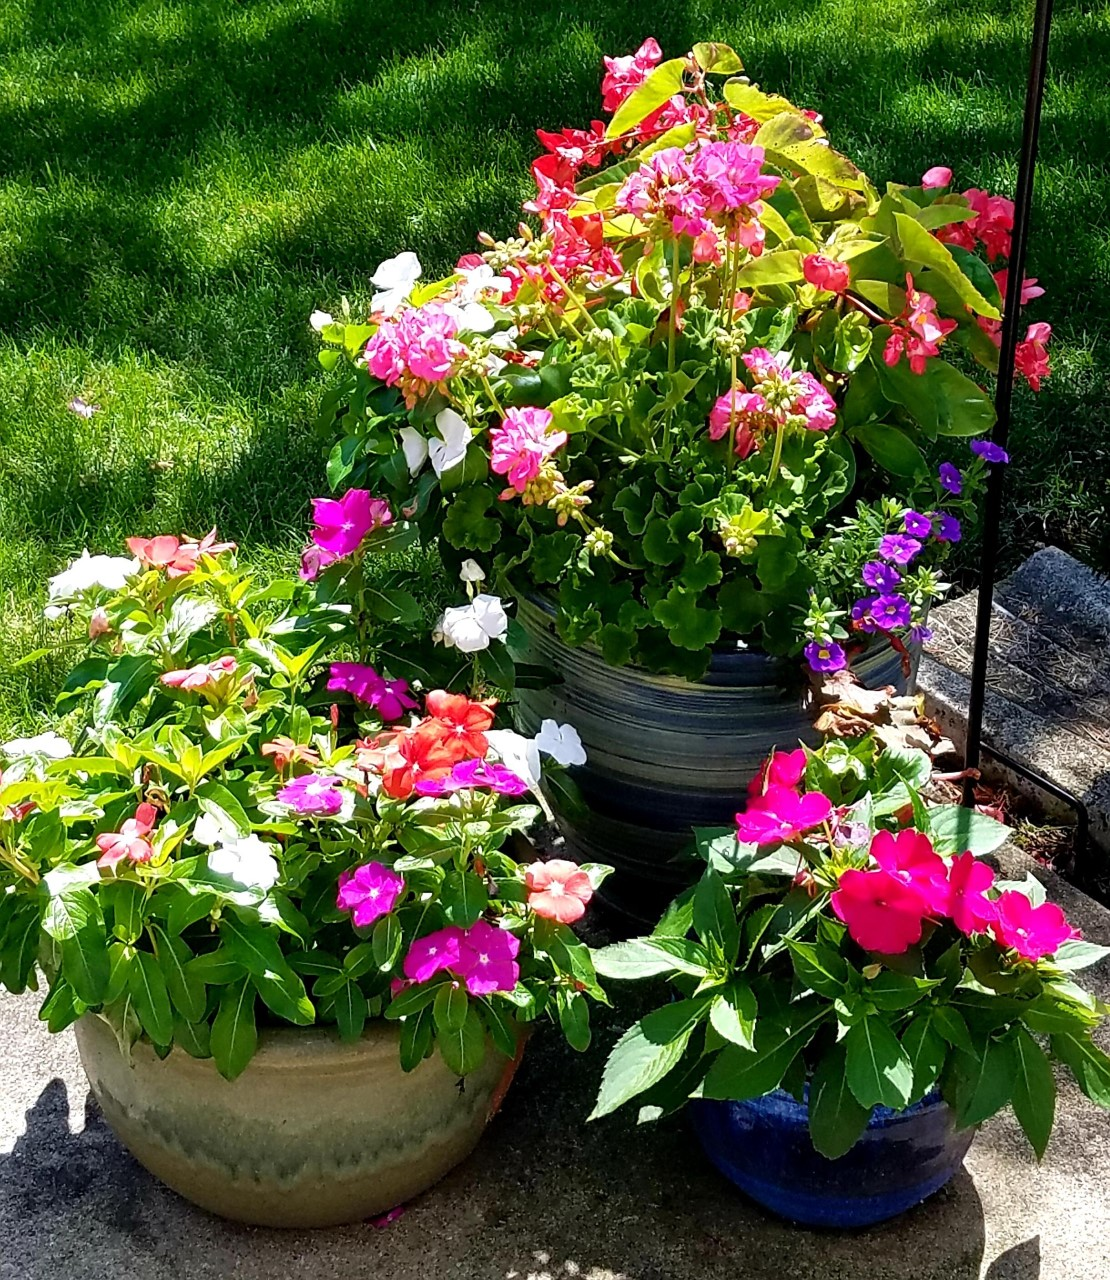 Containers of Vinca, Begonias, New Guinea Impatiens, and Geraniums by FlowerChick.com